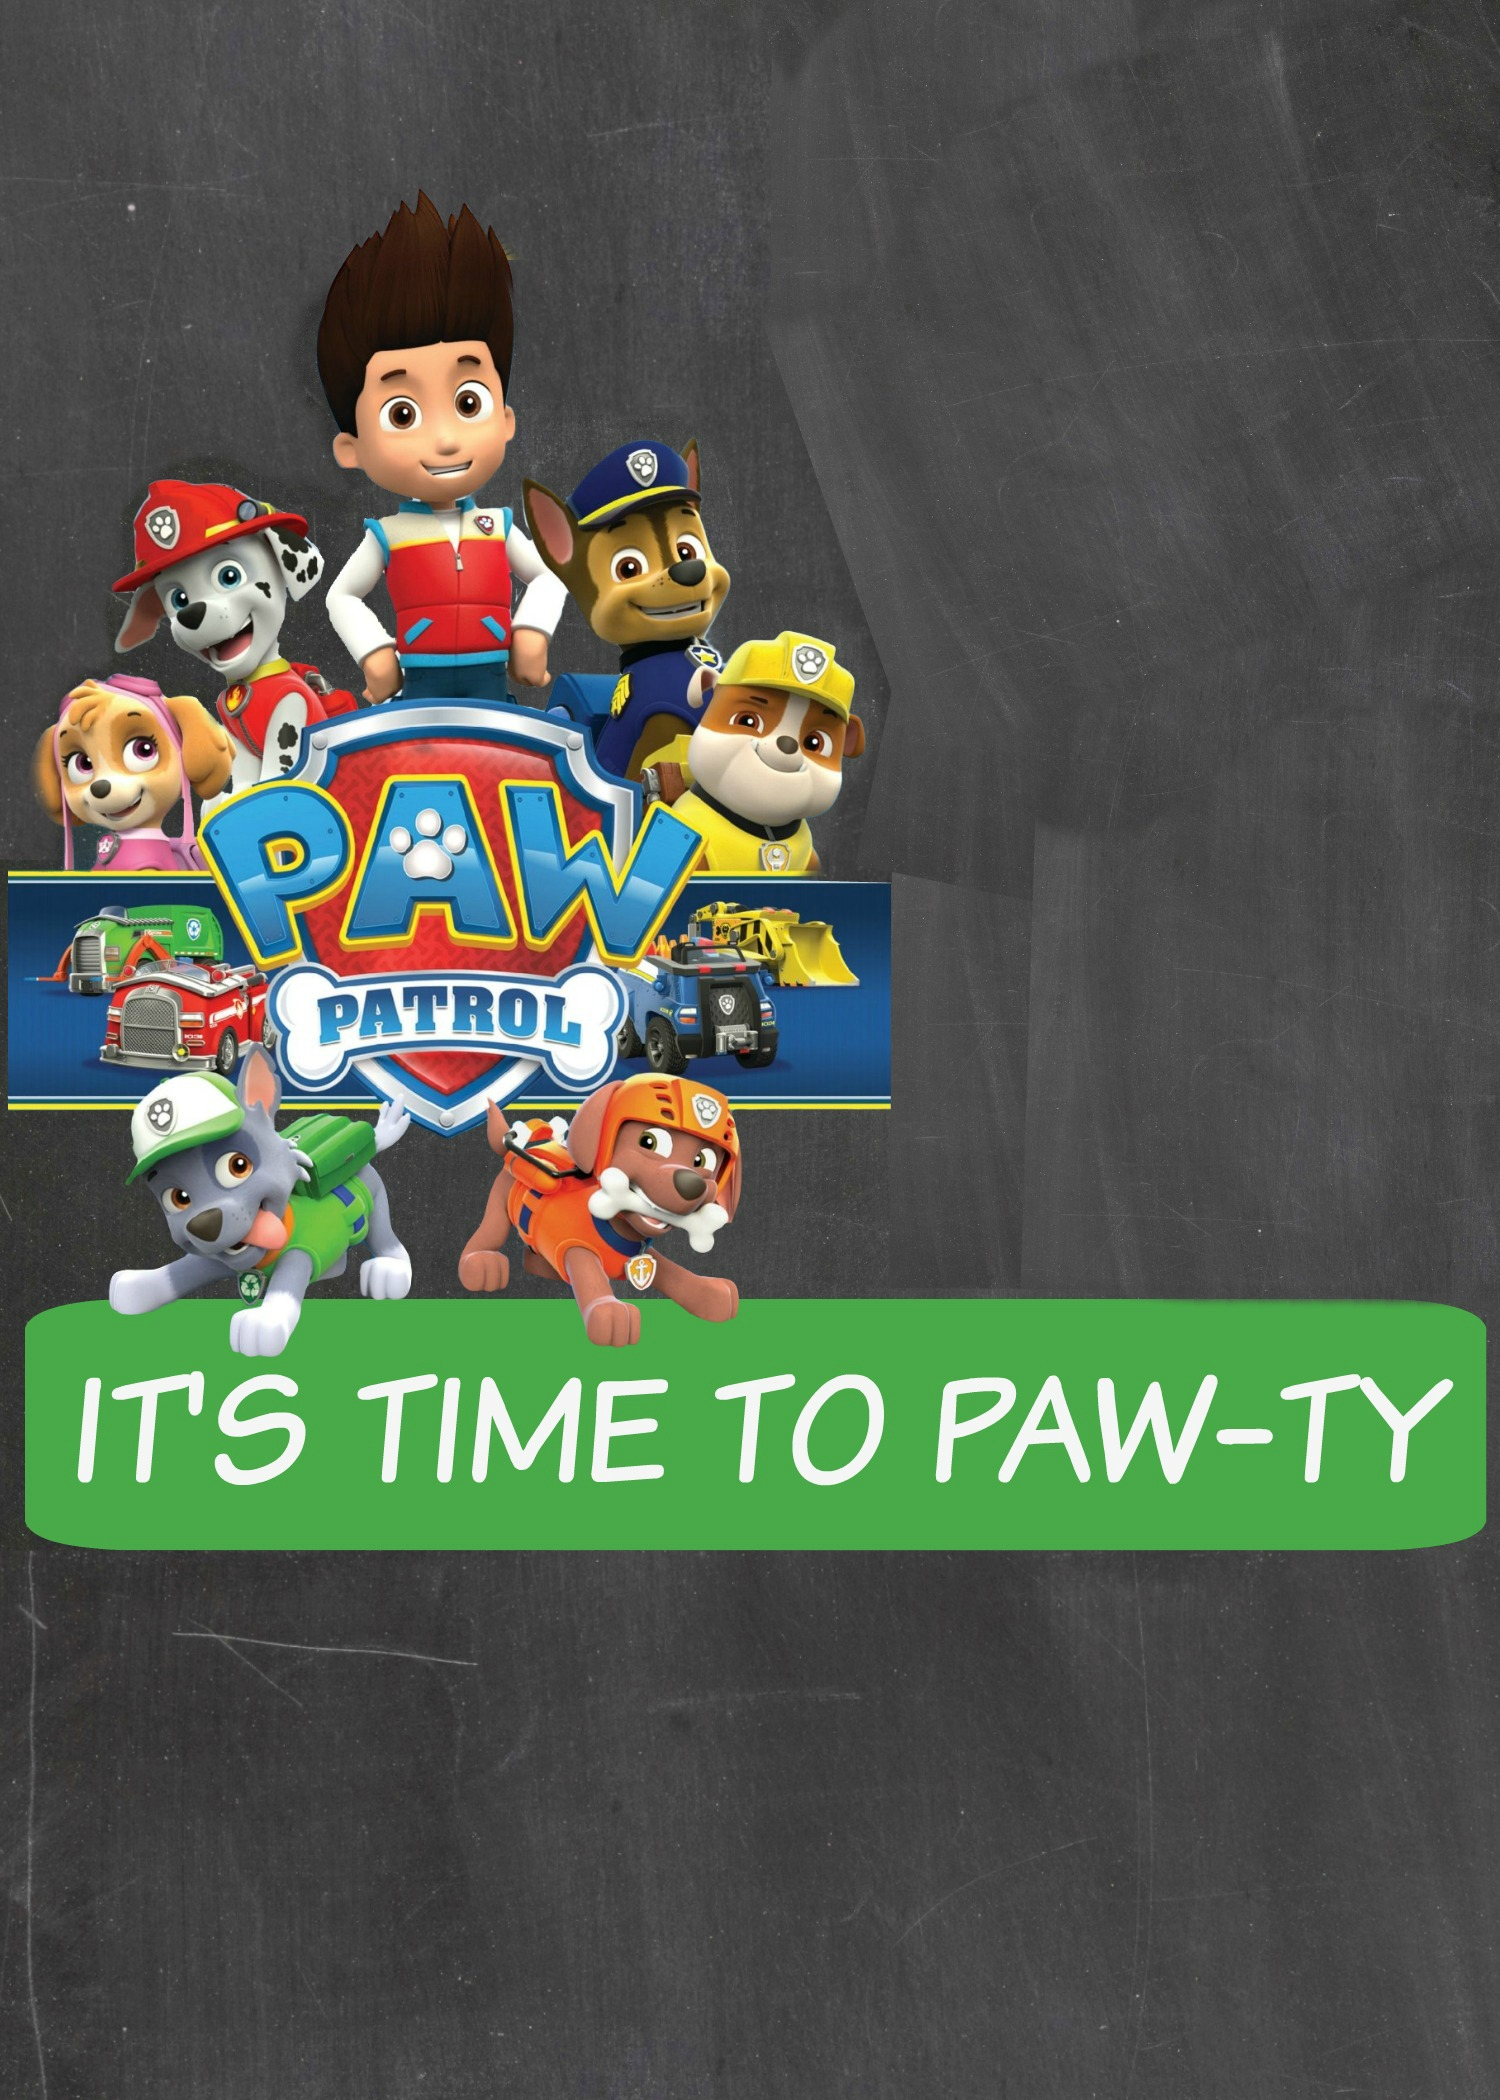 How To Make A Paw Patrol Digital Invitation Includes FREE Clipart - Paw patrol invitation template